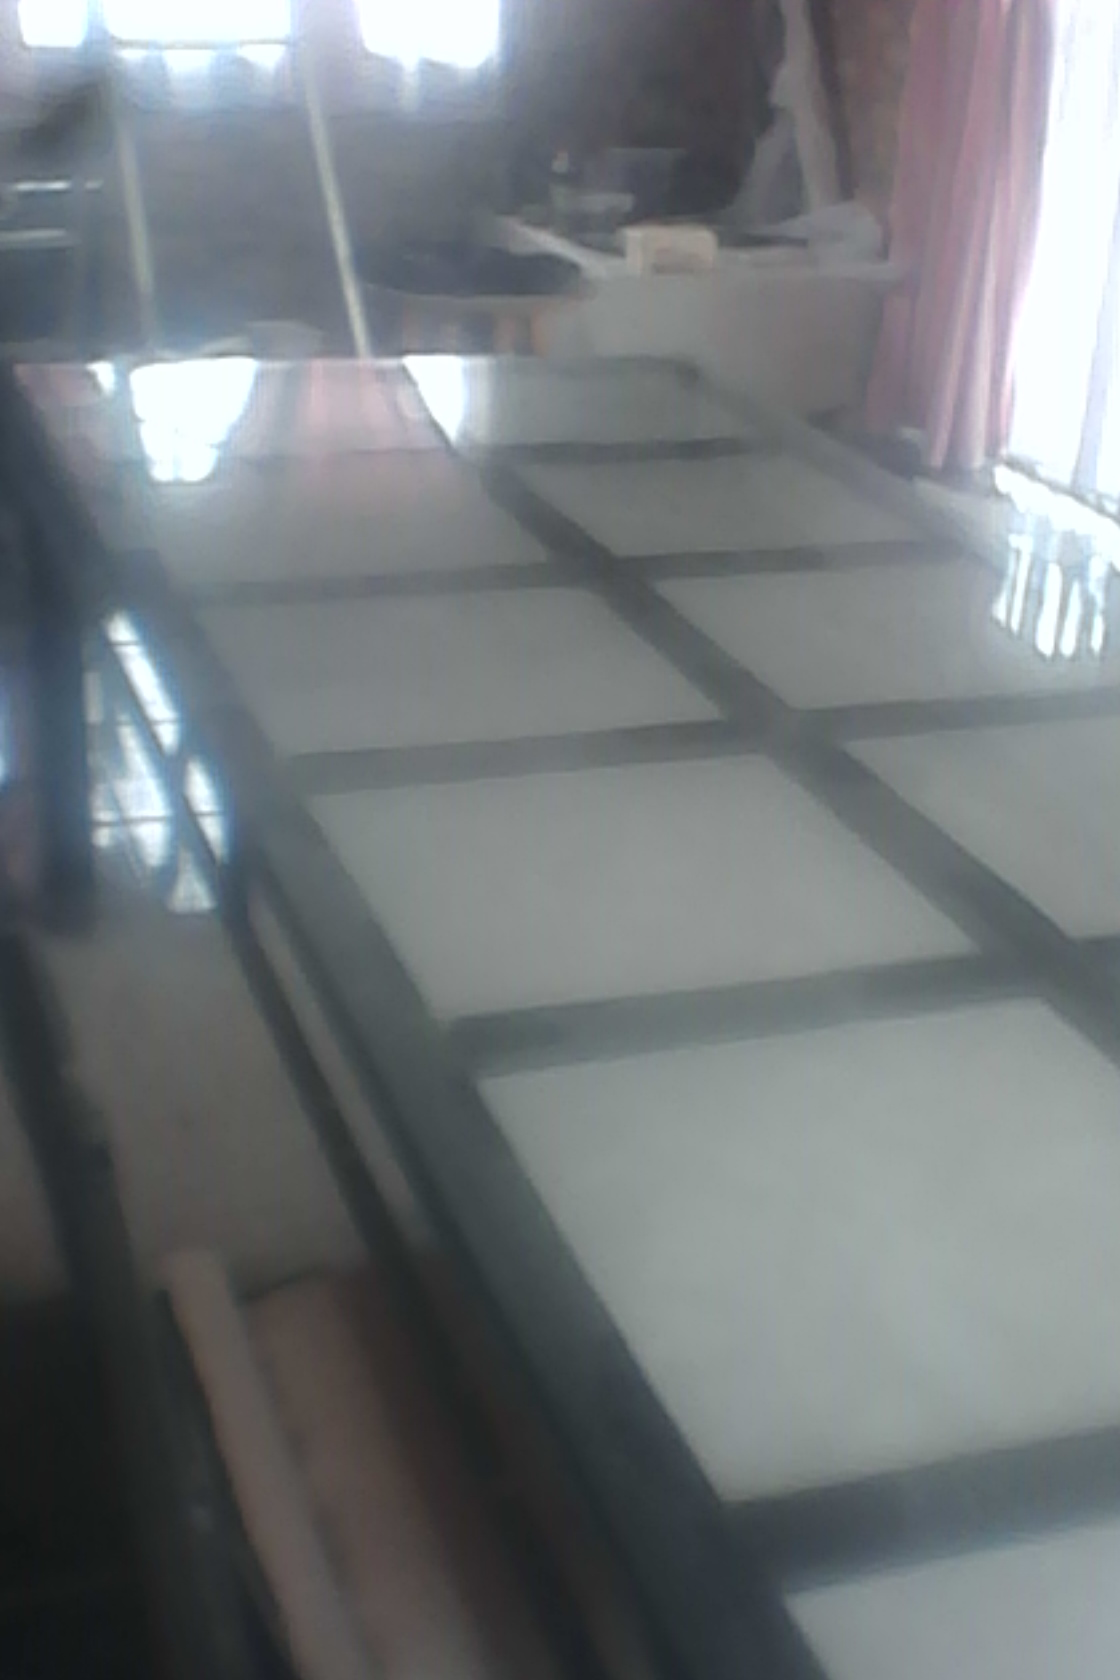 10 Seater Garden set, steel table 6 x 1.5 m with 10 chairs, tile inserts R 1500.00. Collect at Vaal Marina.